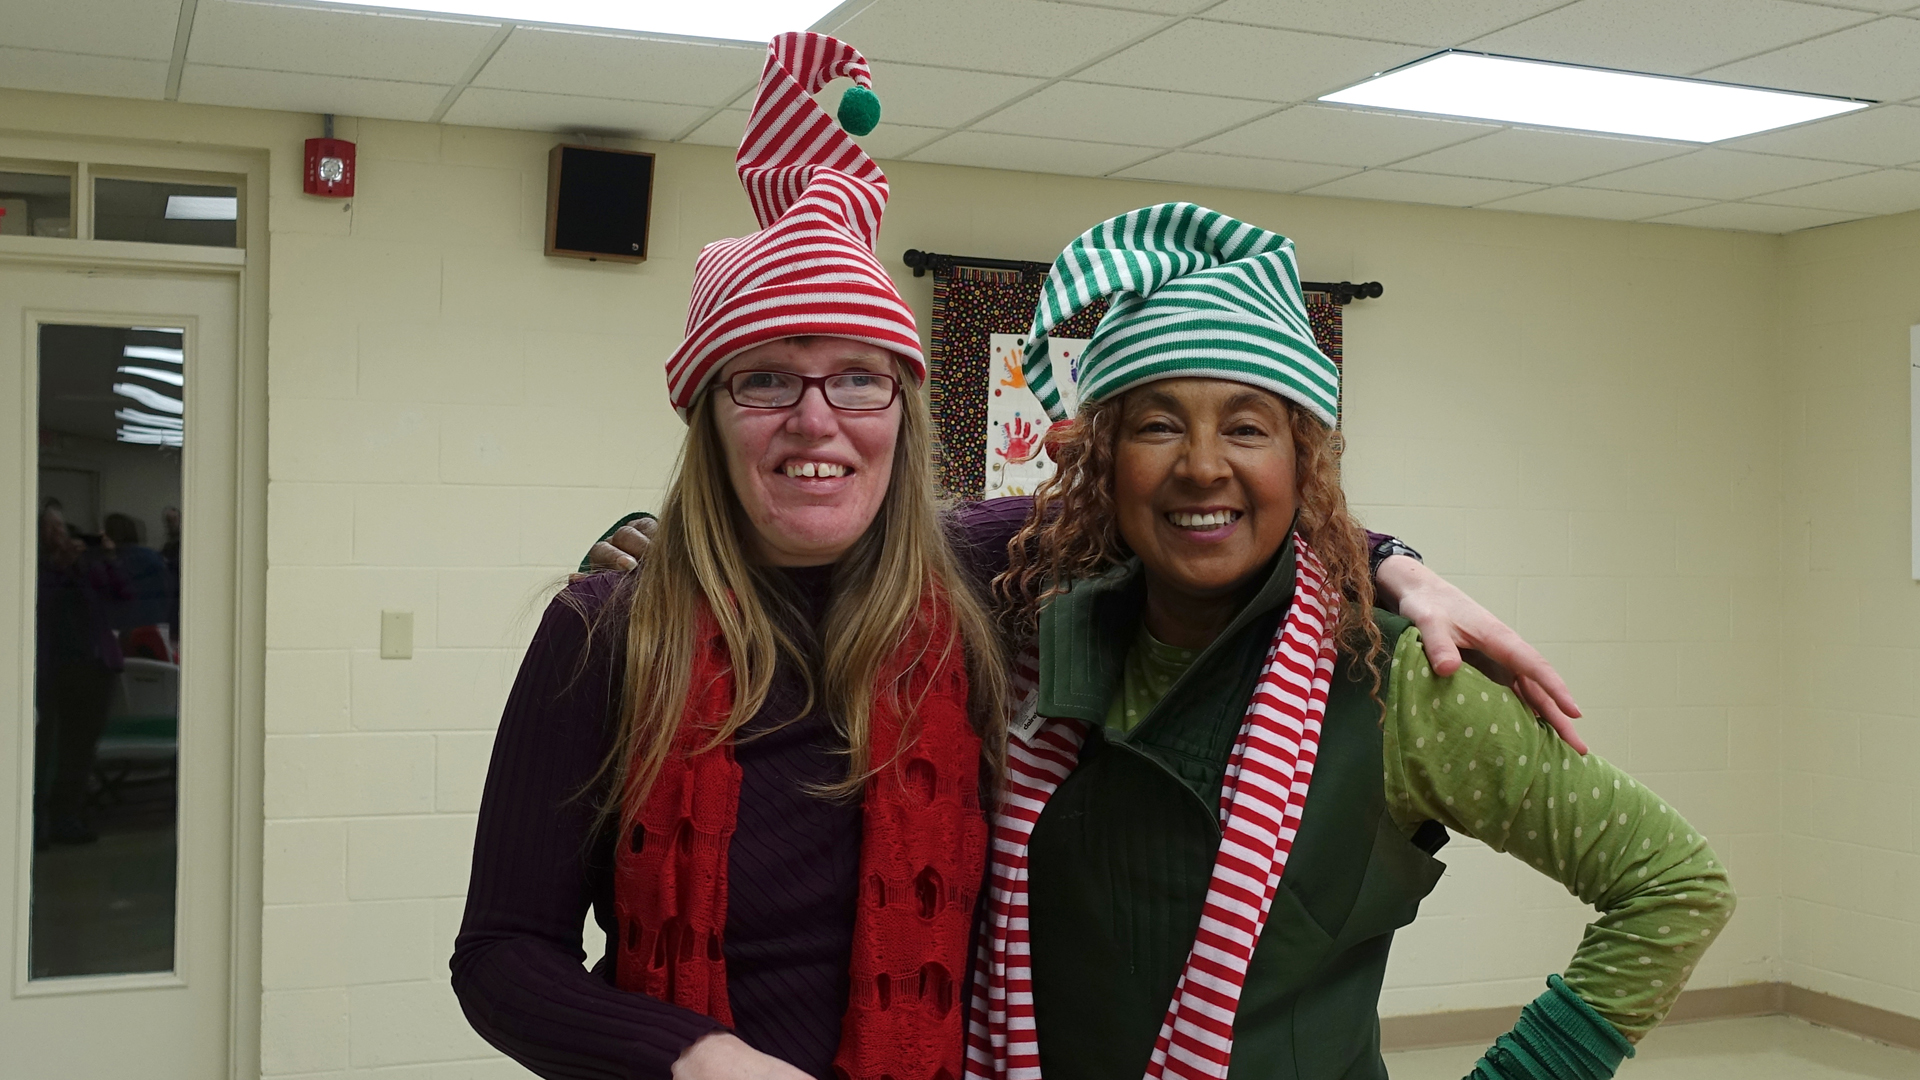 Jessica and Sonya in red and green striped Christmas hats, smile for the camera